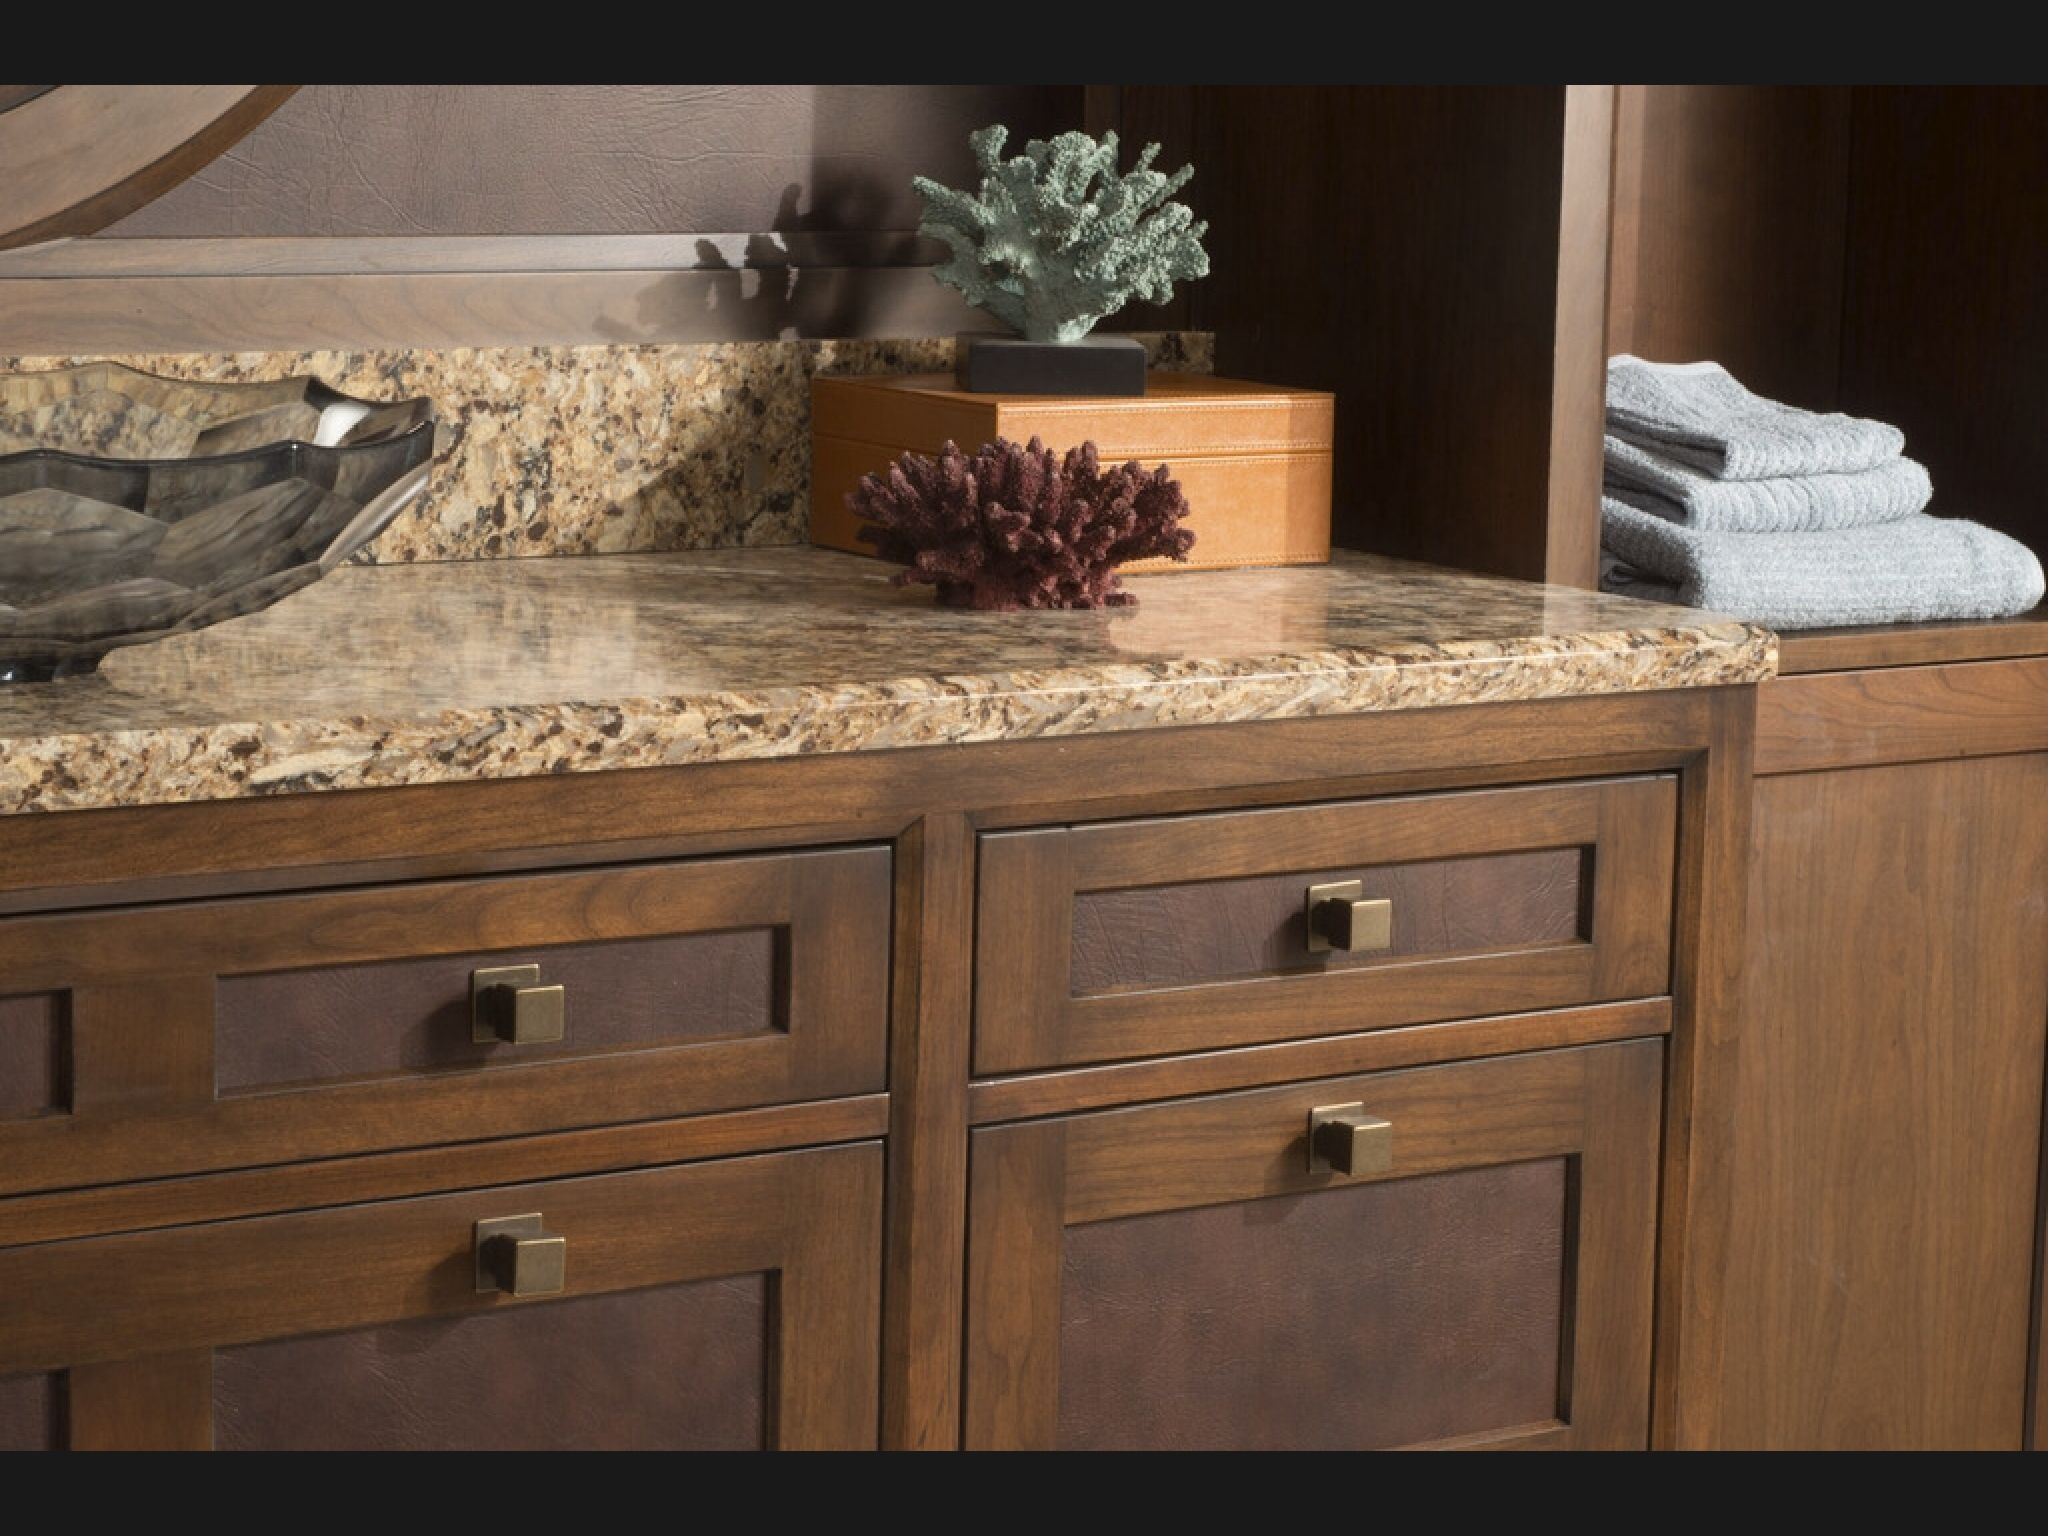 Cherry Cabinetry With Leather Inserts By Woodmode In New Morningside Theme Wood Mode Inset Cabinets Custom Cabinets